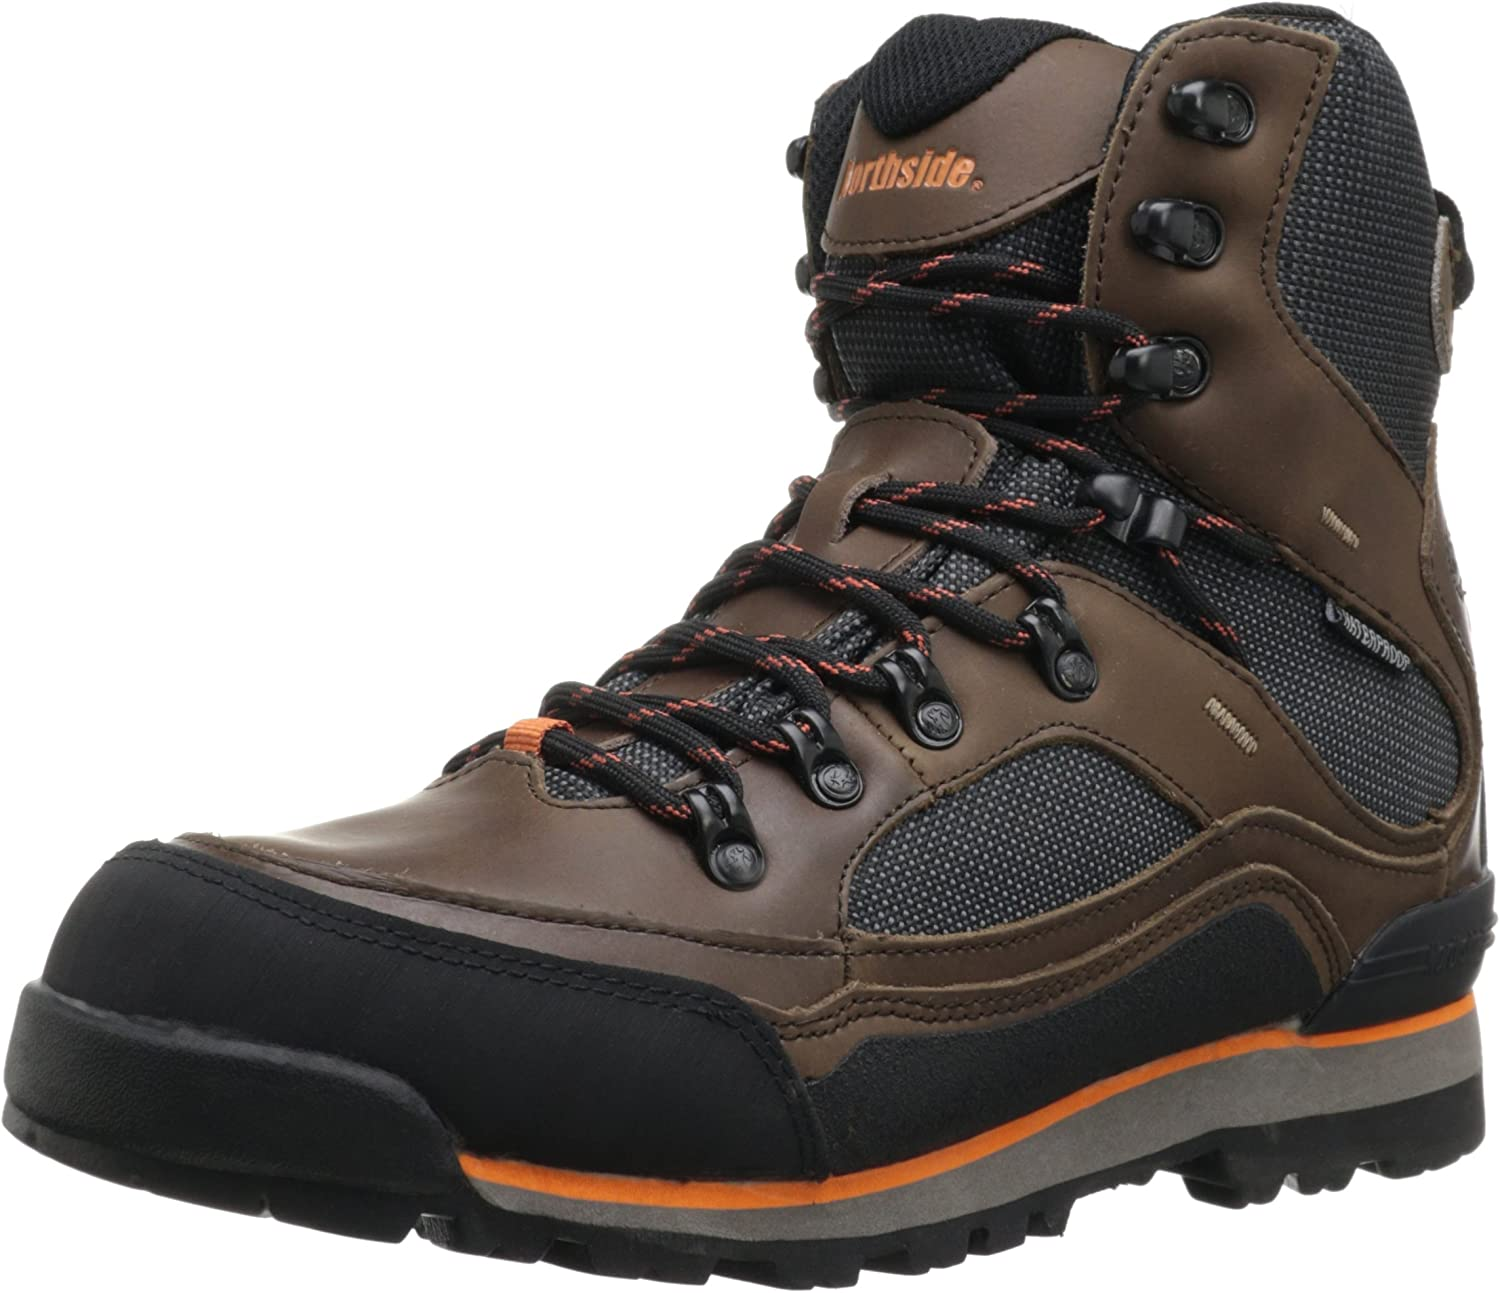 Northside Men's Base Boot Camp Albuquerque OFFicial shop Mall Hiking